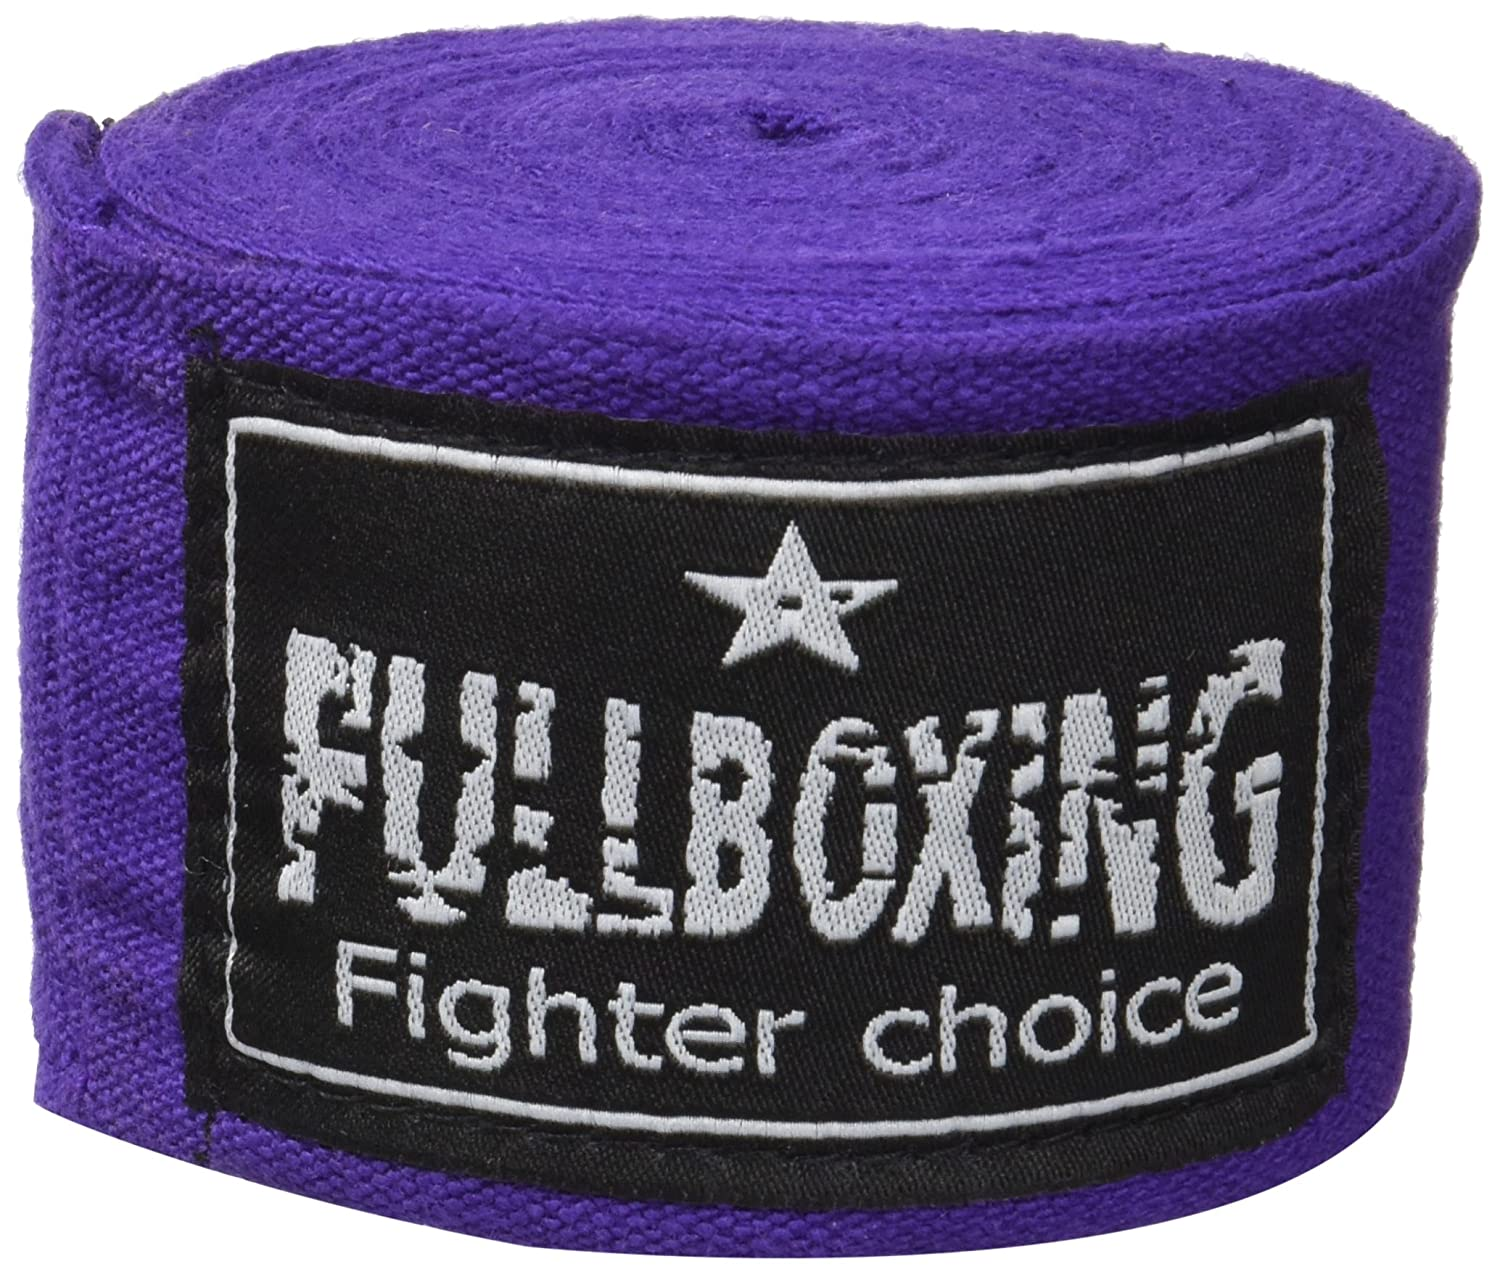 Fullboxing 05094, Venda Unisex , Azul, 5 m, Pack de 2 Softee Equipment 05094.028